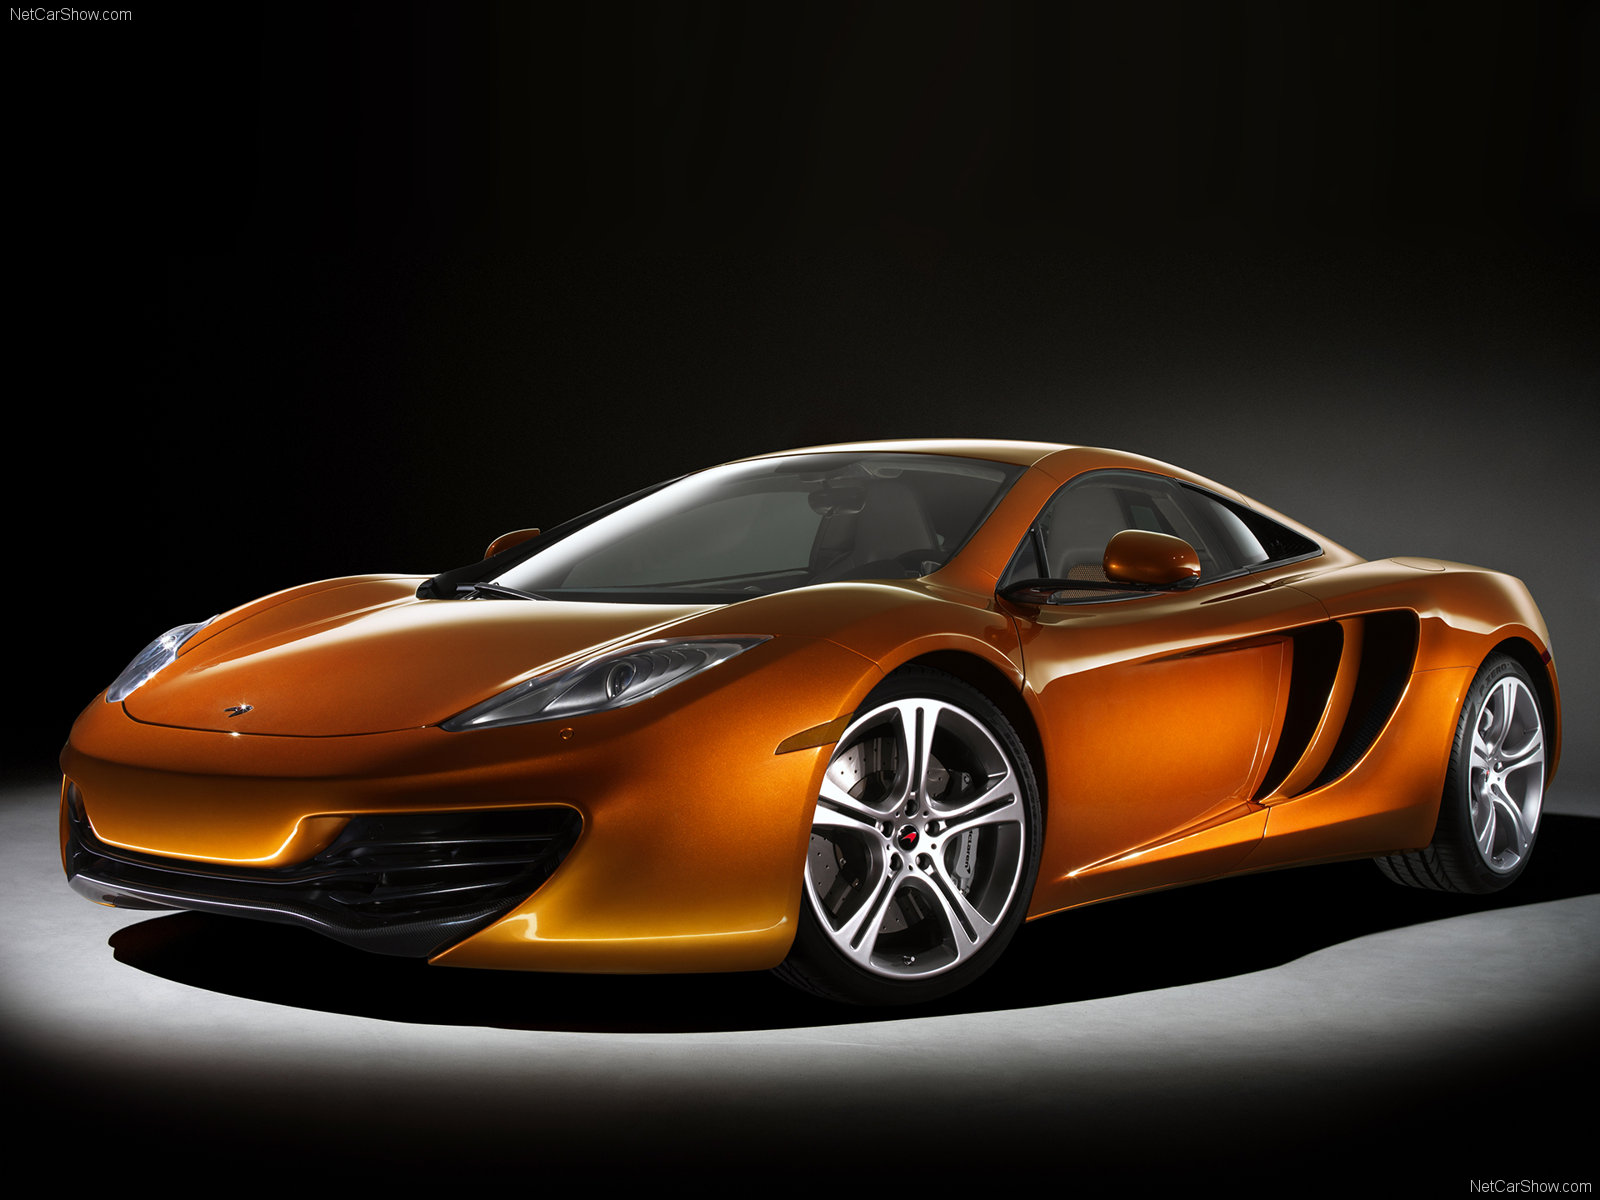 McLaren MP4-12C  car models list free image editor Wallpaper